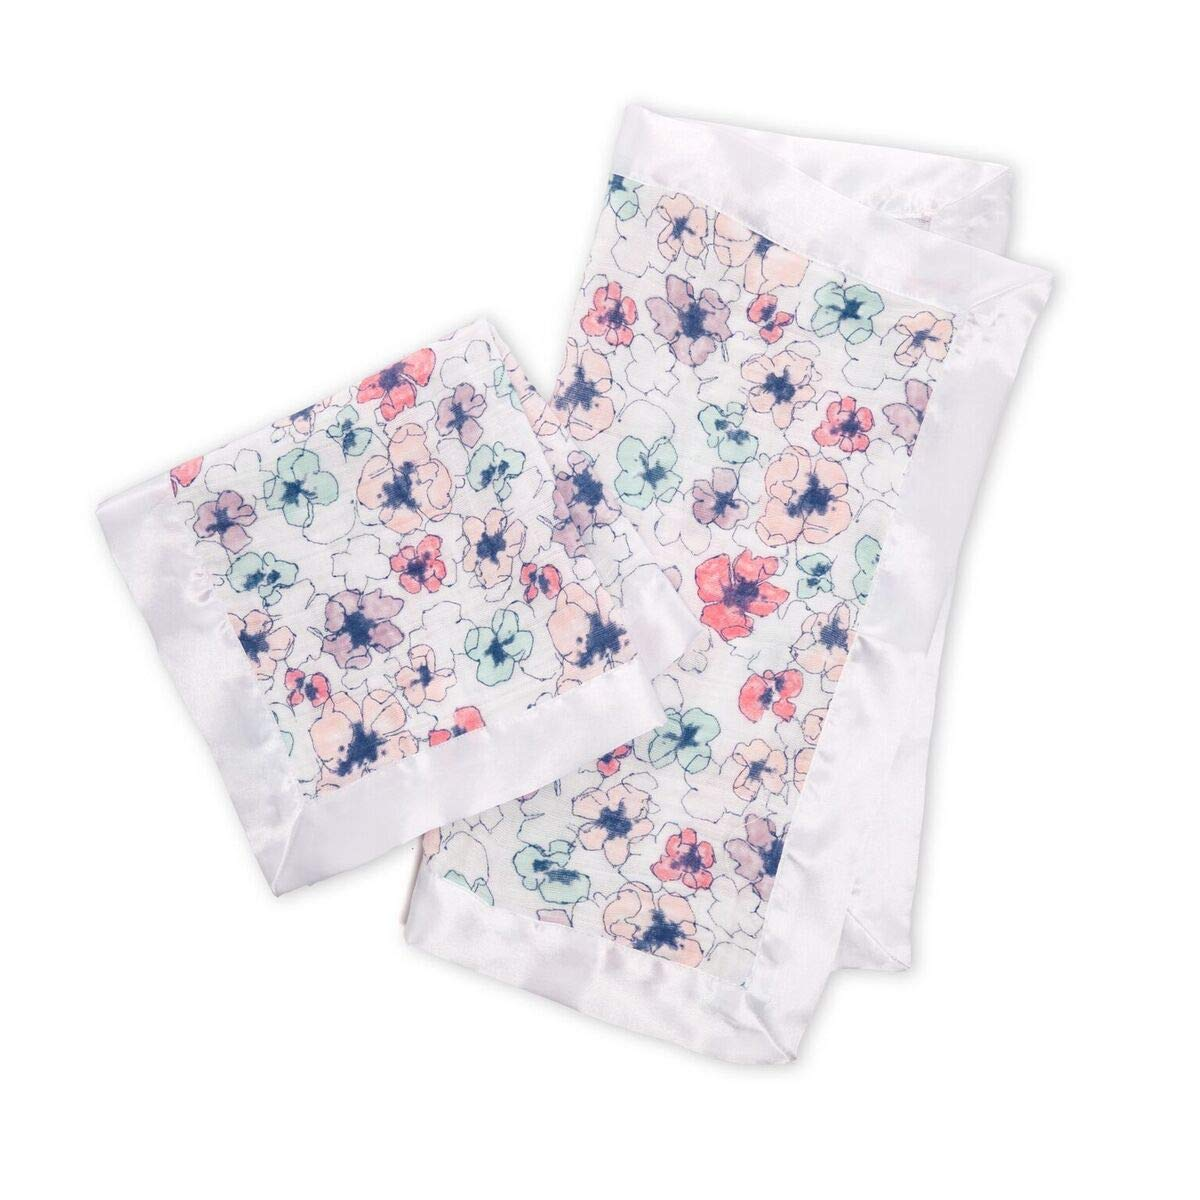 Aden + Anais Security Blanket, Satin Trim, Trail Blooms, 2-Pack